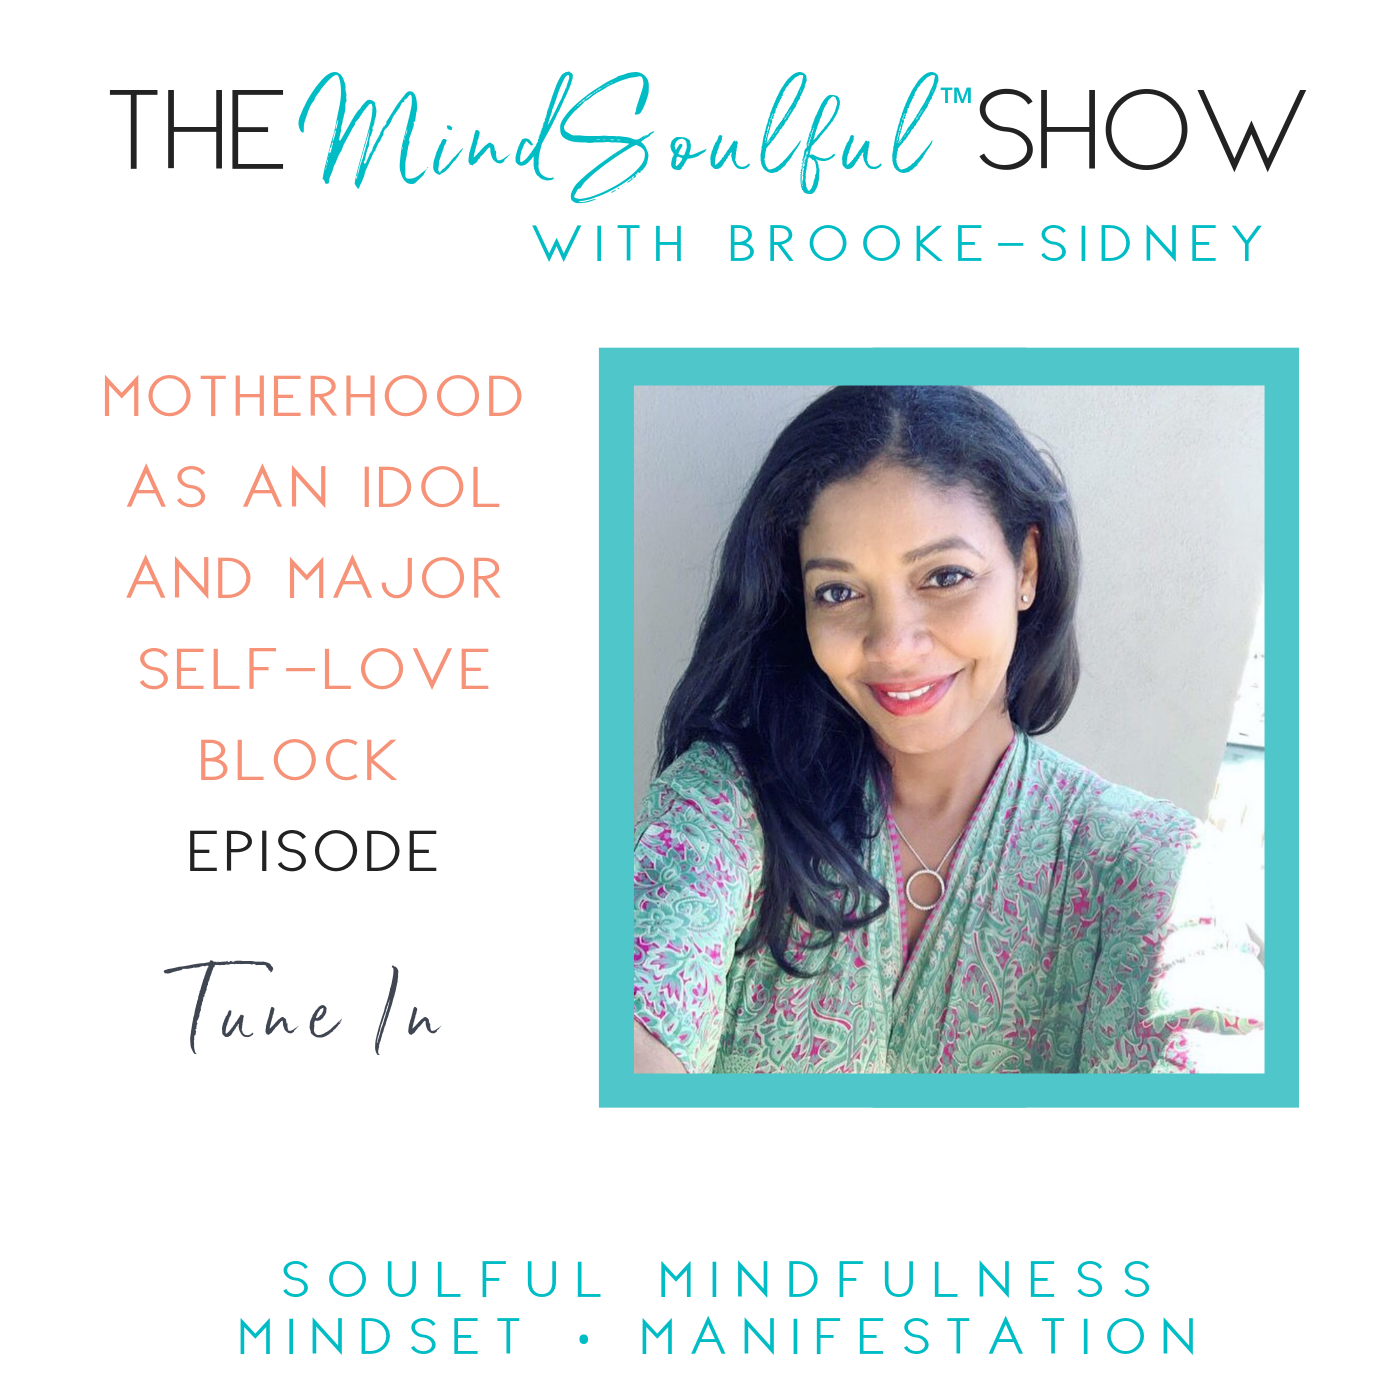 The MindSoulful Show - MOTHERHOOD AS AN IDOL AND MAJOR SELF-LOVE BLOCK.png